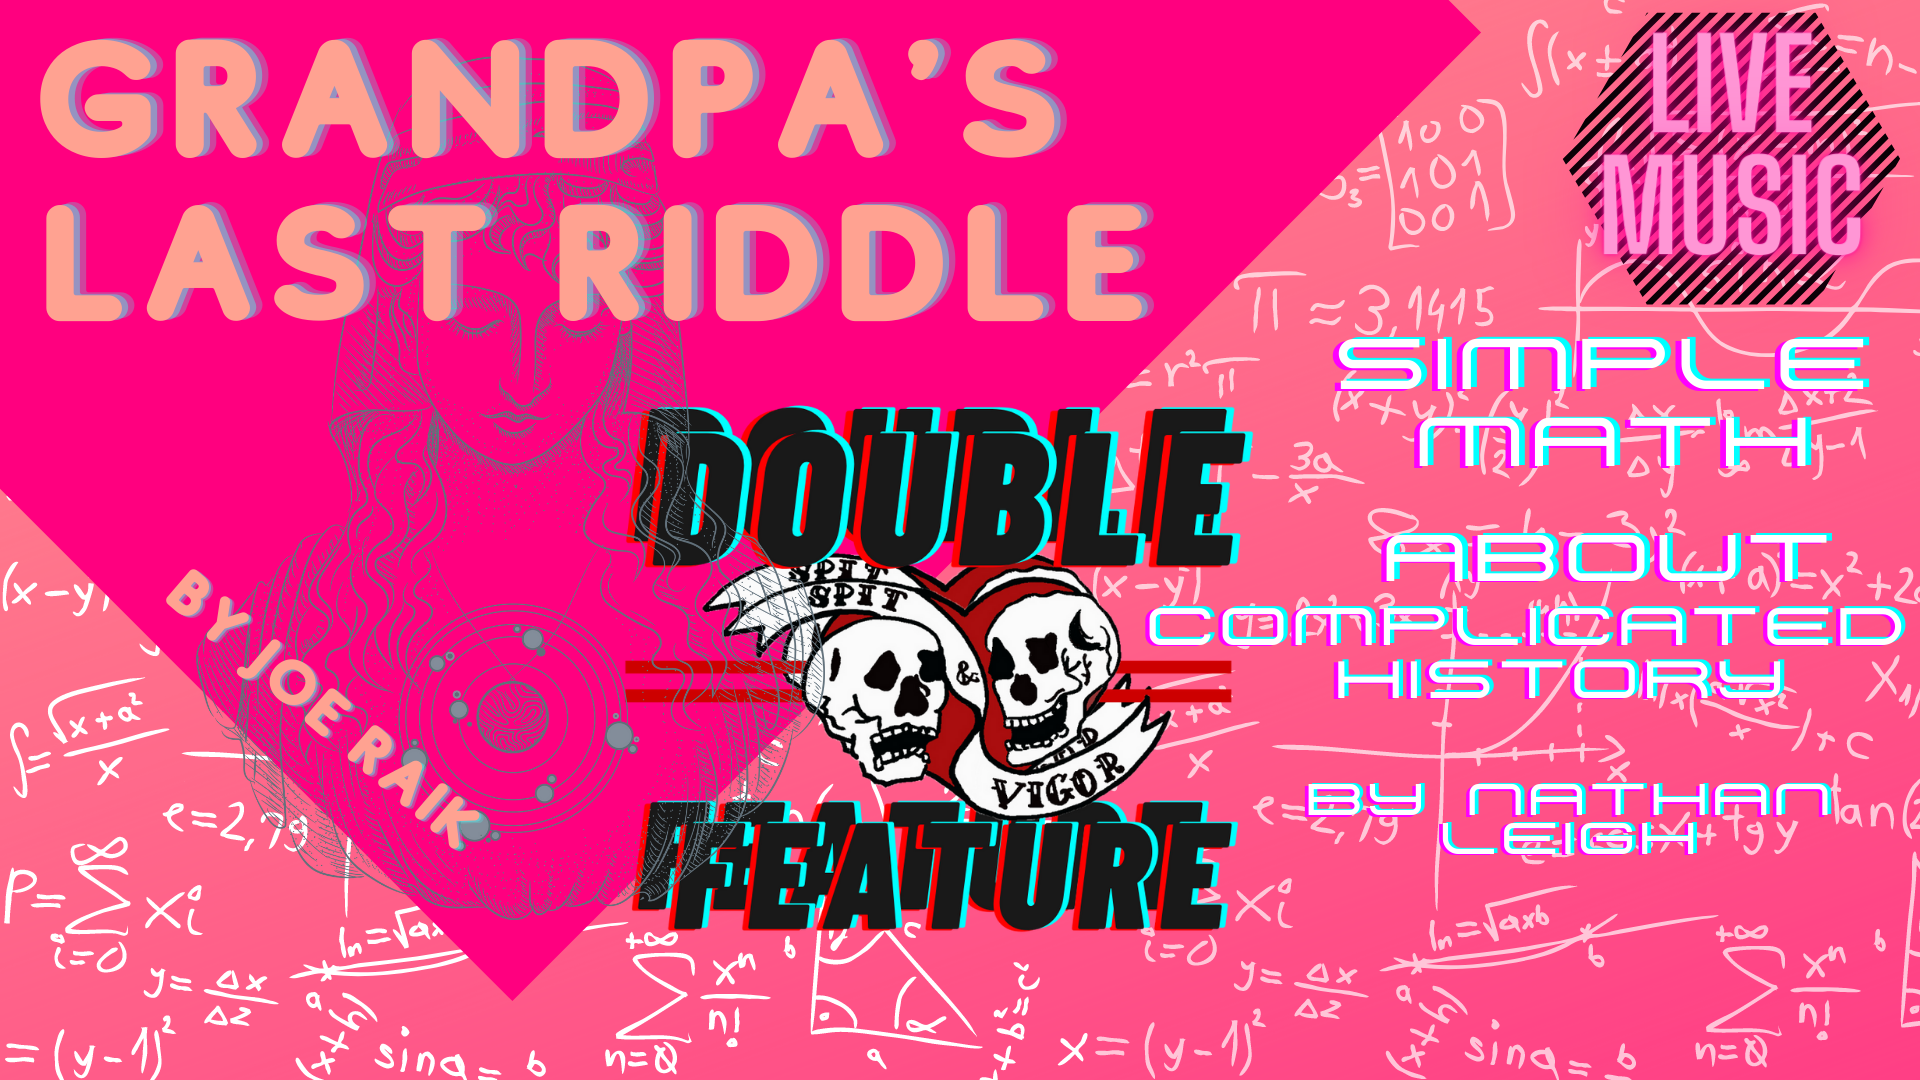 spit&vigor's DOUBLE FEATURES: Grandpa's Last Riddle and Simple Math About Complicated History